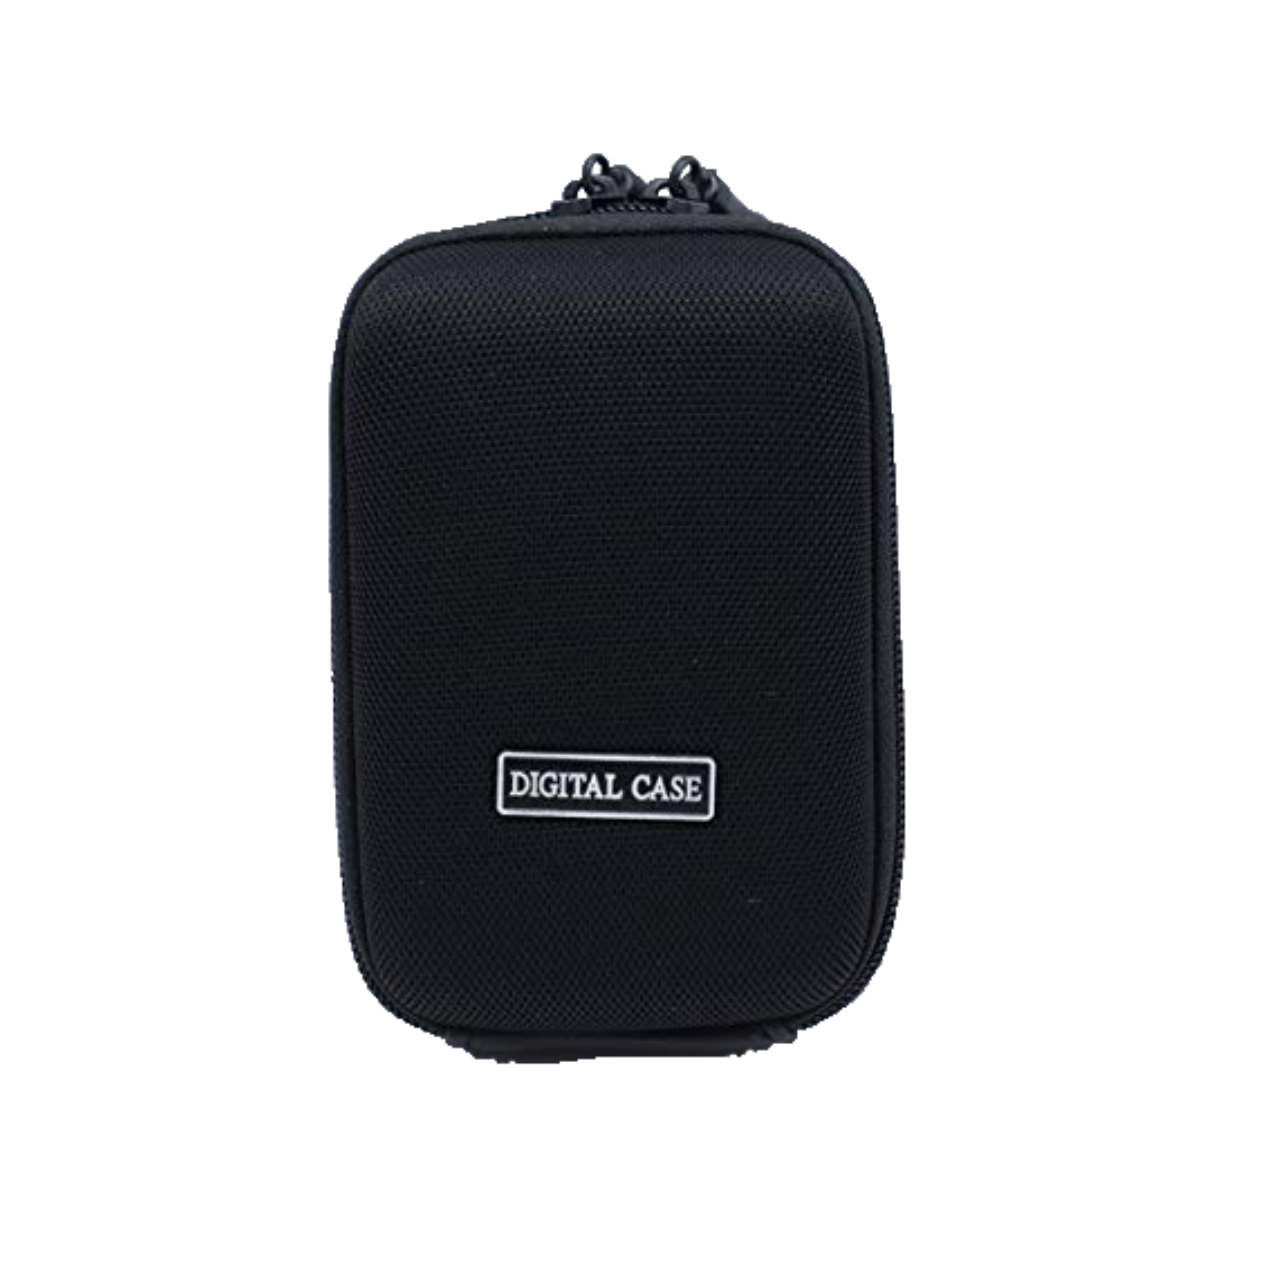 Solibag Carry Case -5003 Hardcase Pure Black L (With Shoulder Strap And Belt Loop) Suitable For Example Cybershot Dsc Hx60 Hx90 – Coolpix S9900 W100 W150 – Lumix Dmc Tz70 Tz80 – Powershot Sx710 Sx720 Camcorder & Camera Accessories Camera Bags